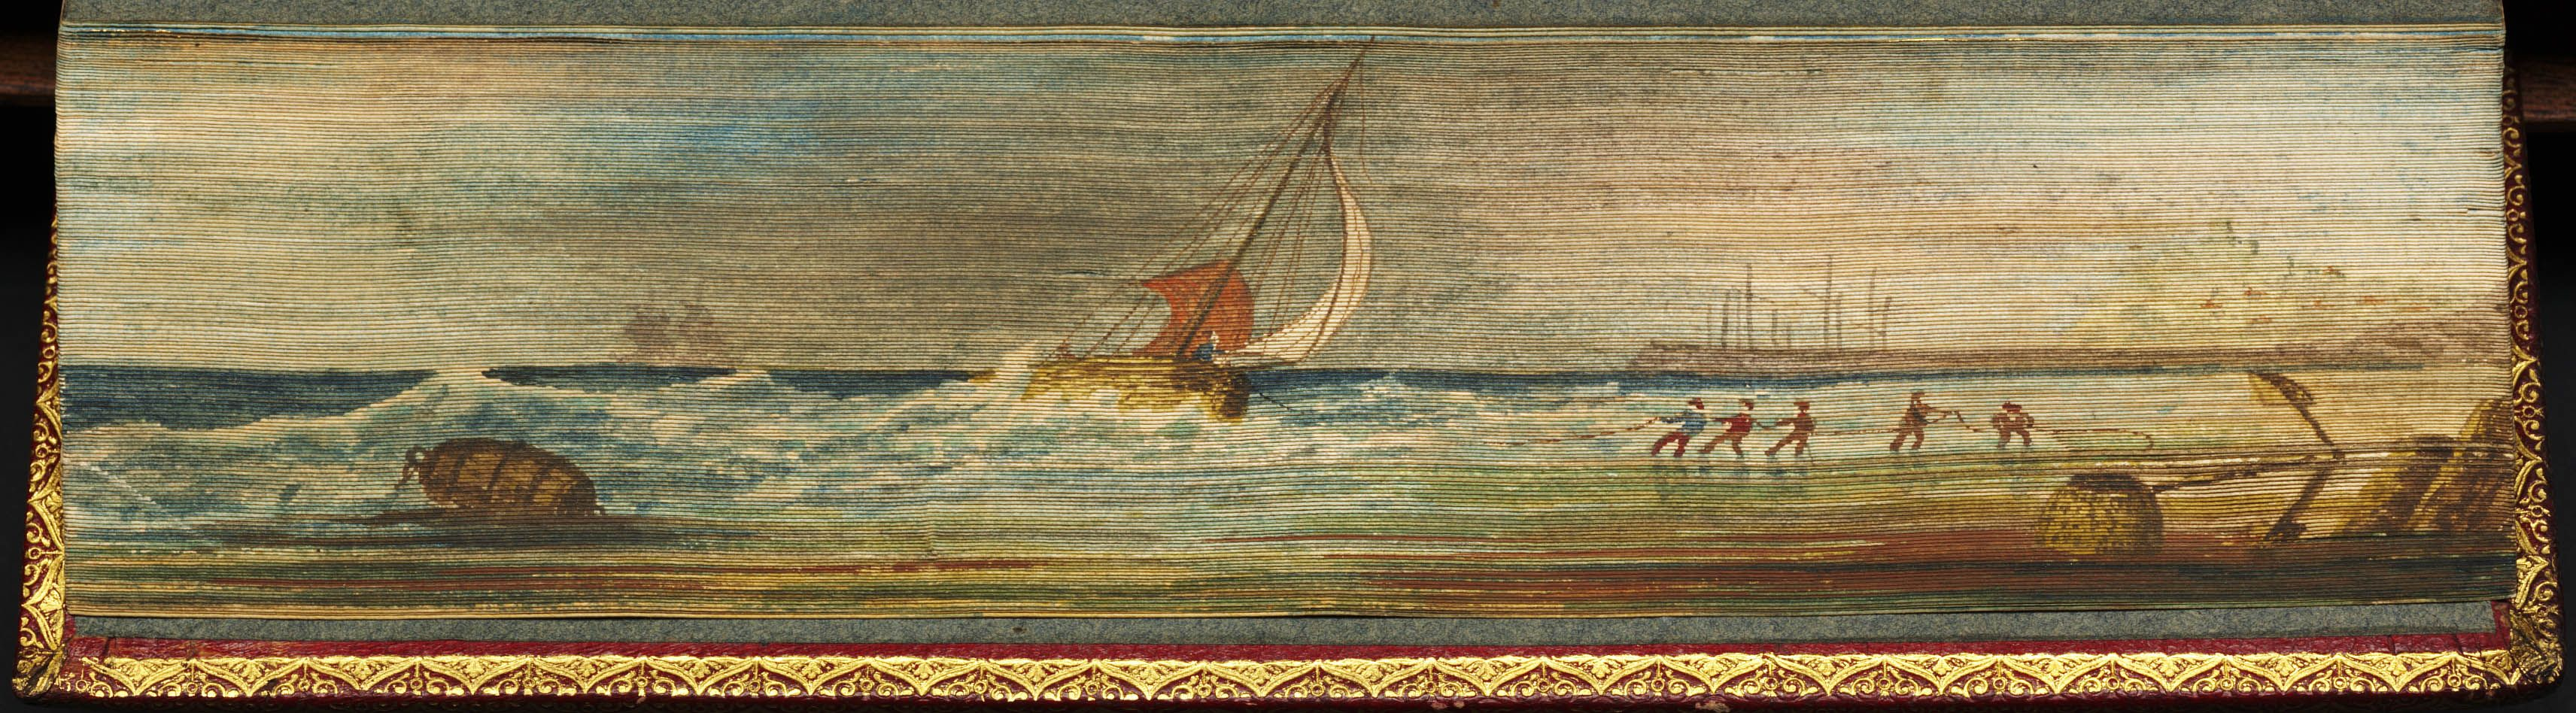 Book title: Helga Herbert, William. Helga; a poem. In seven cantos. London, Printed for John Murray, 1815. 8vo, contemporary red straight grain morocco, gilt edges. Under the gilt is a fore-edge painting of a seascape, showing fishermen beaching a boat.